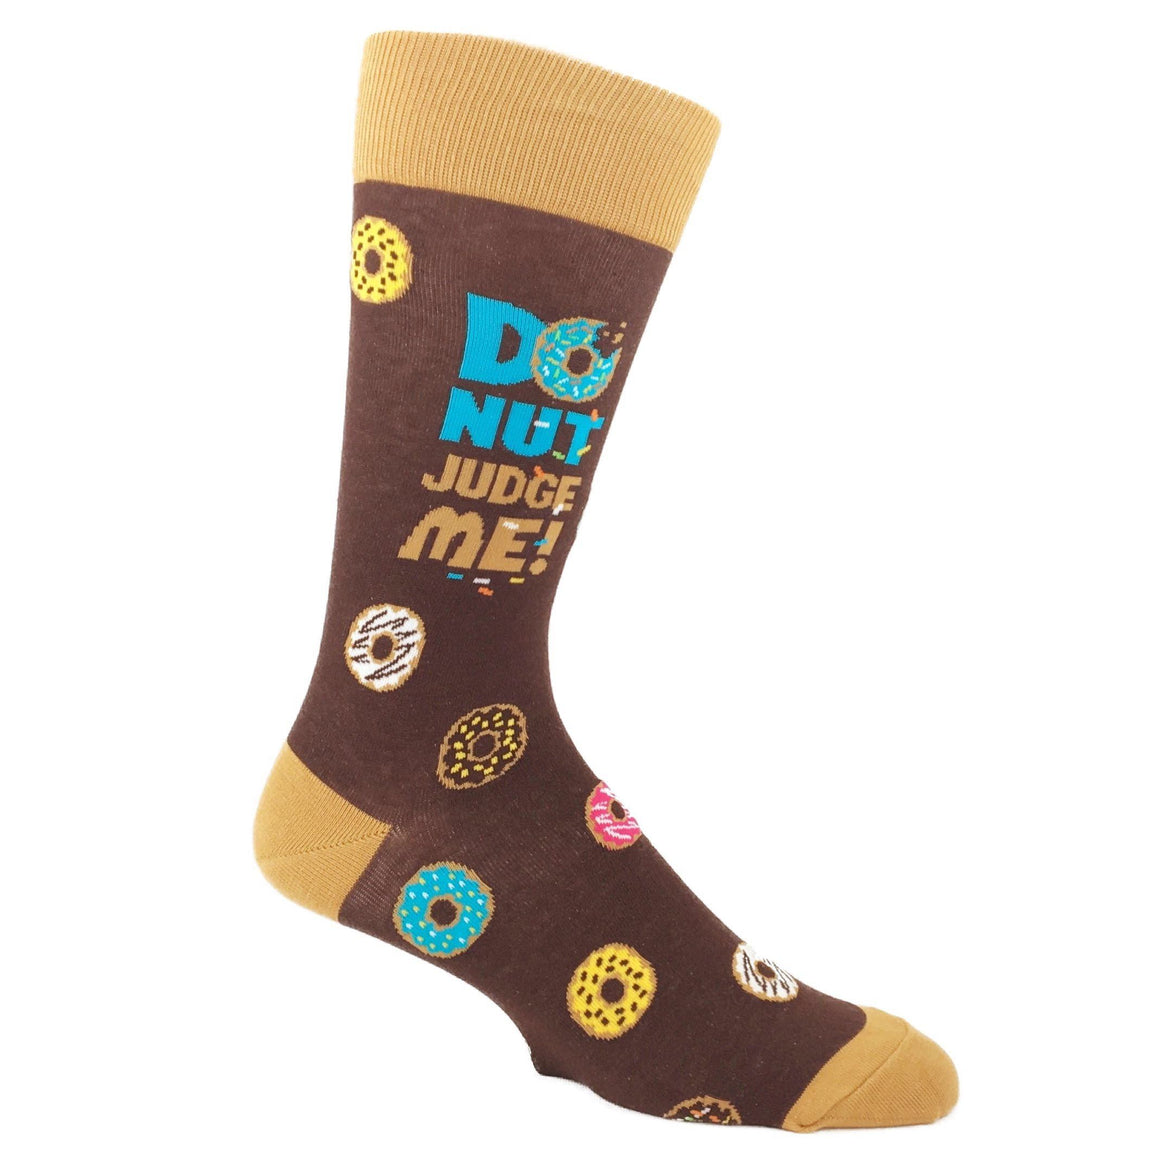 Donut Judge Me Food Socks by Foot Traffic - The Sock Spot